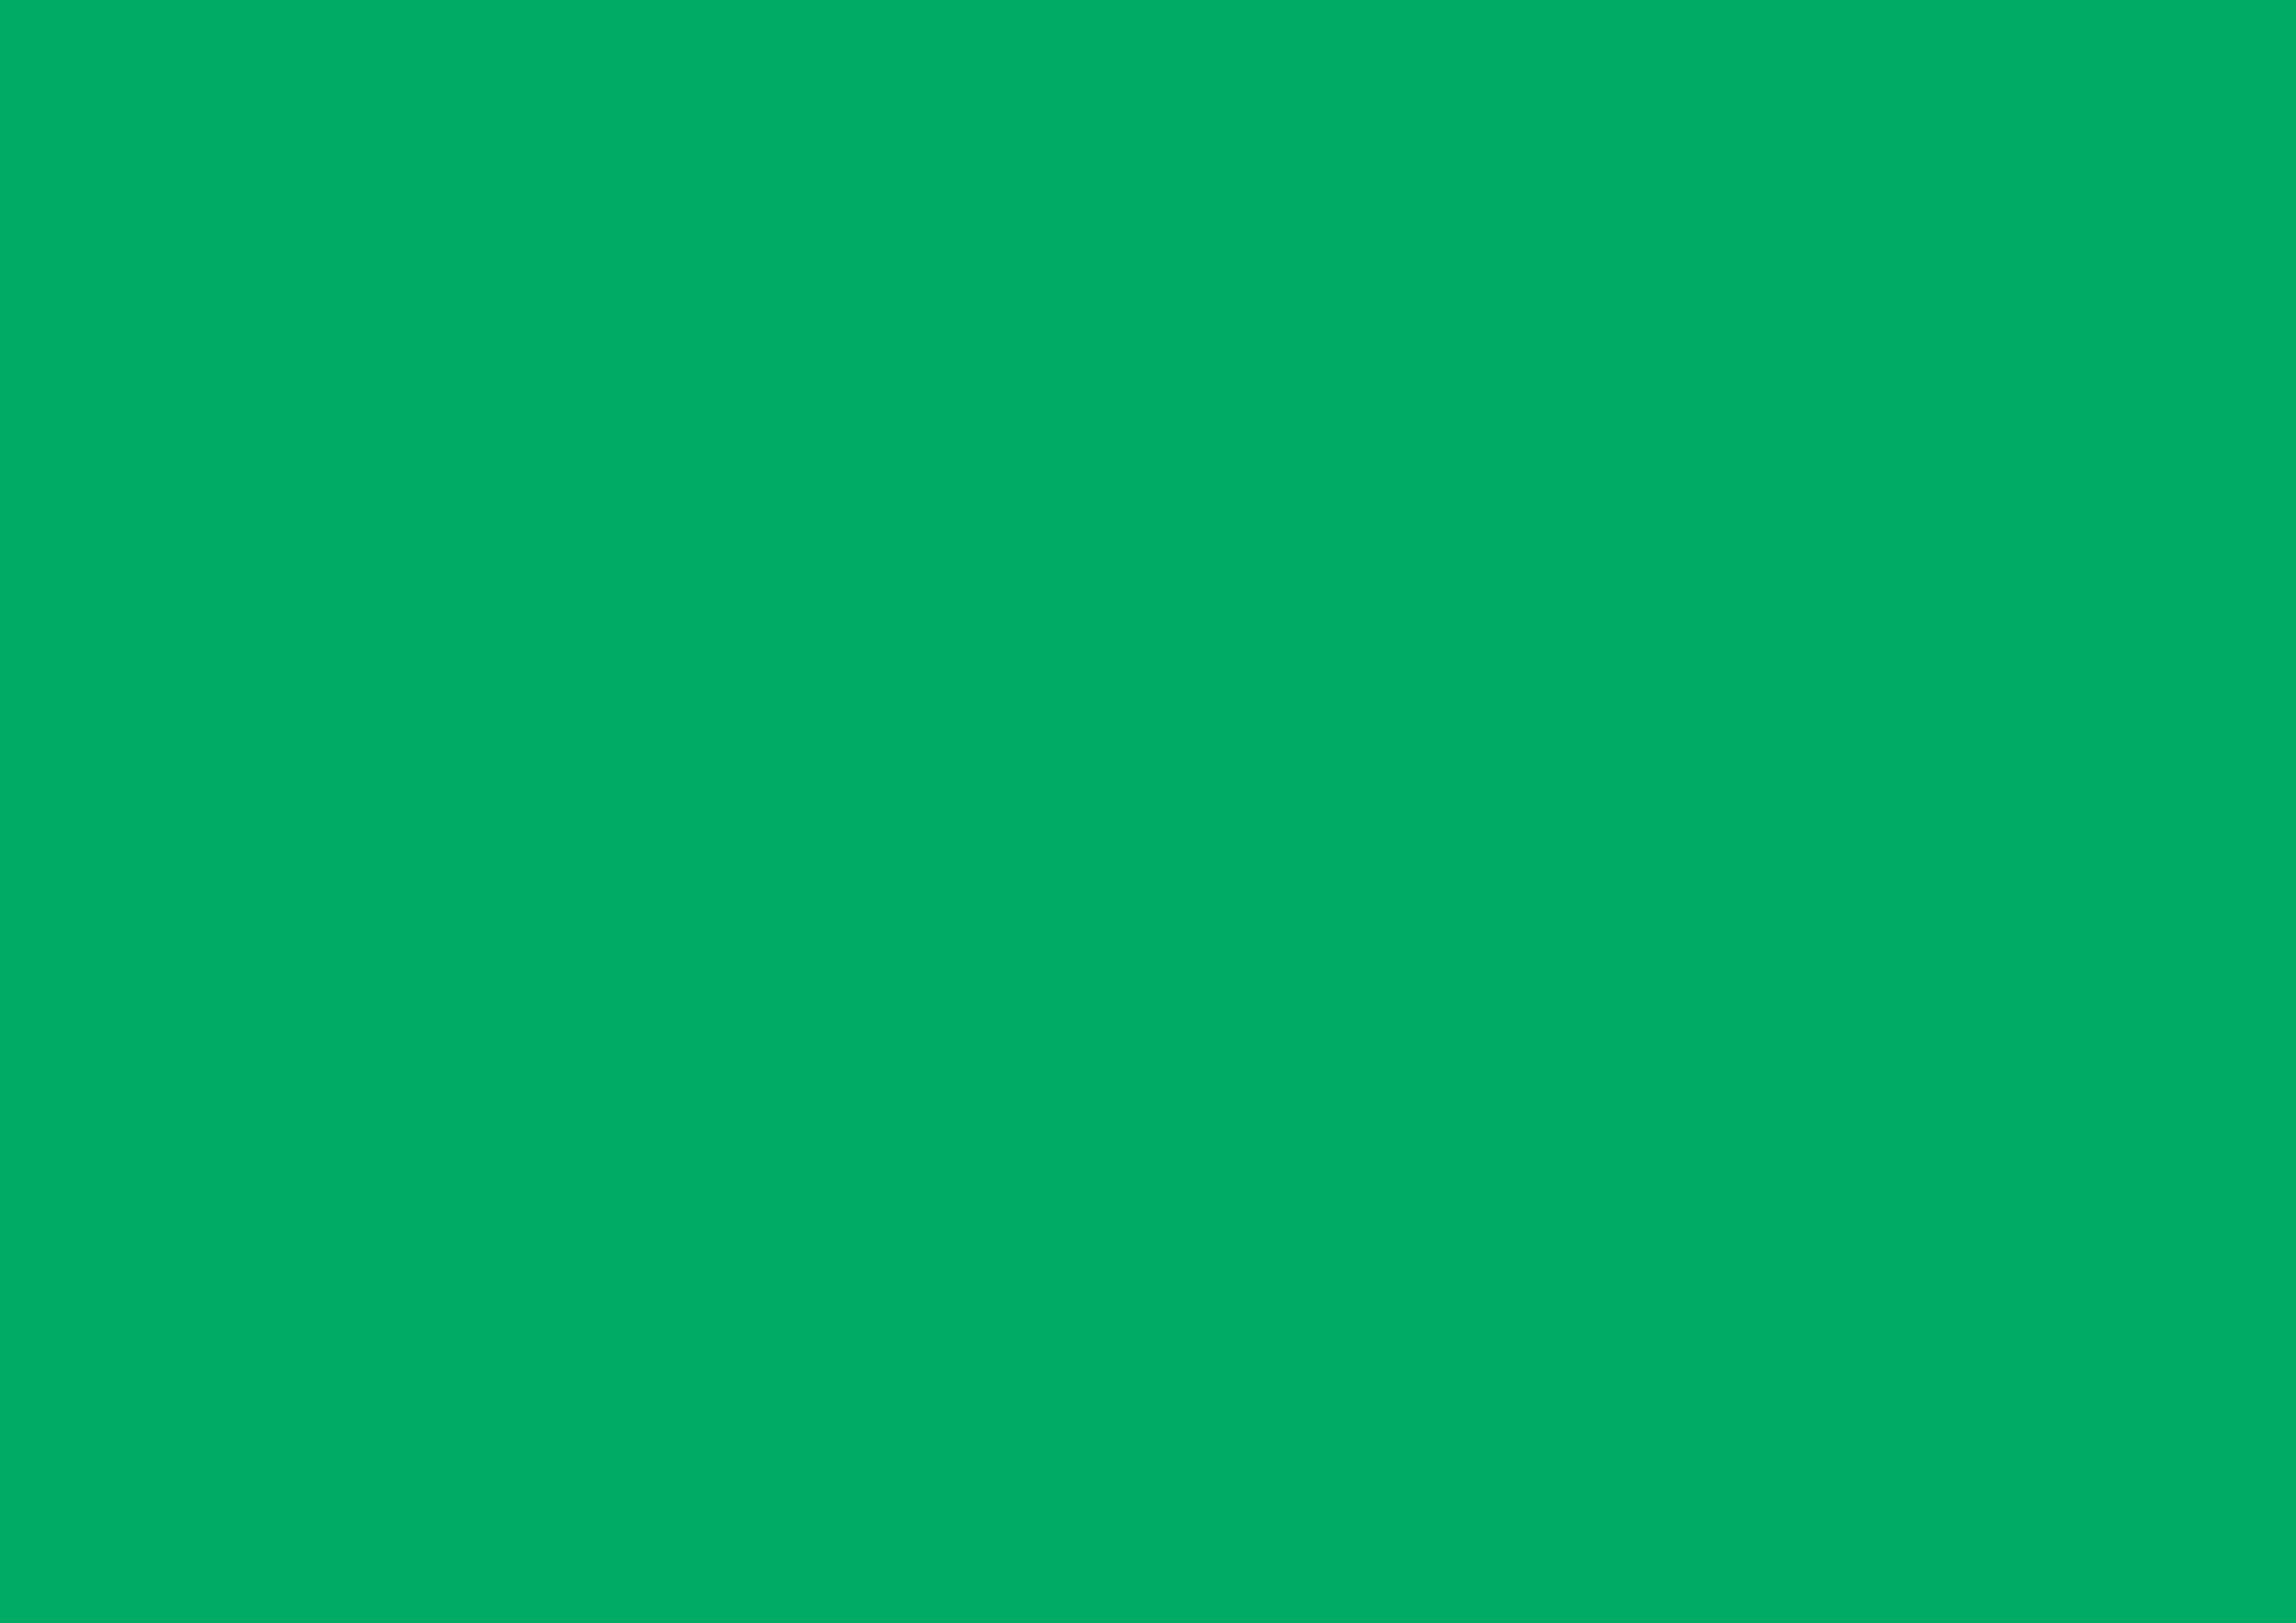 3508x2480 GO Green Solid Color Background